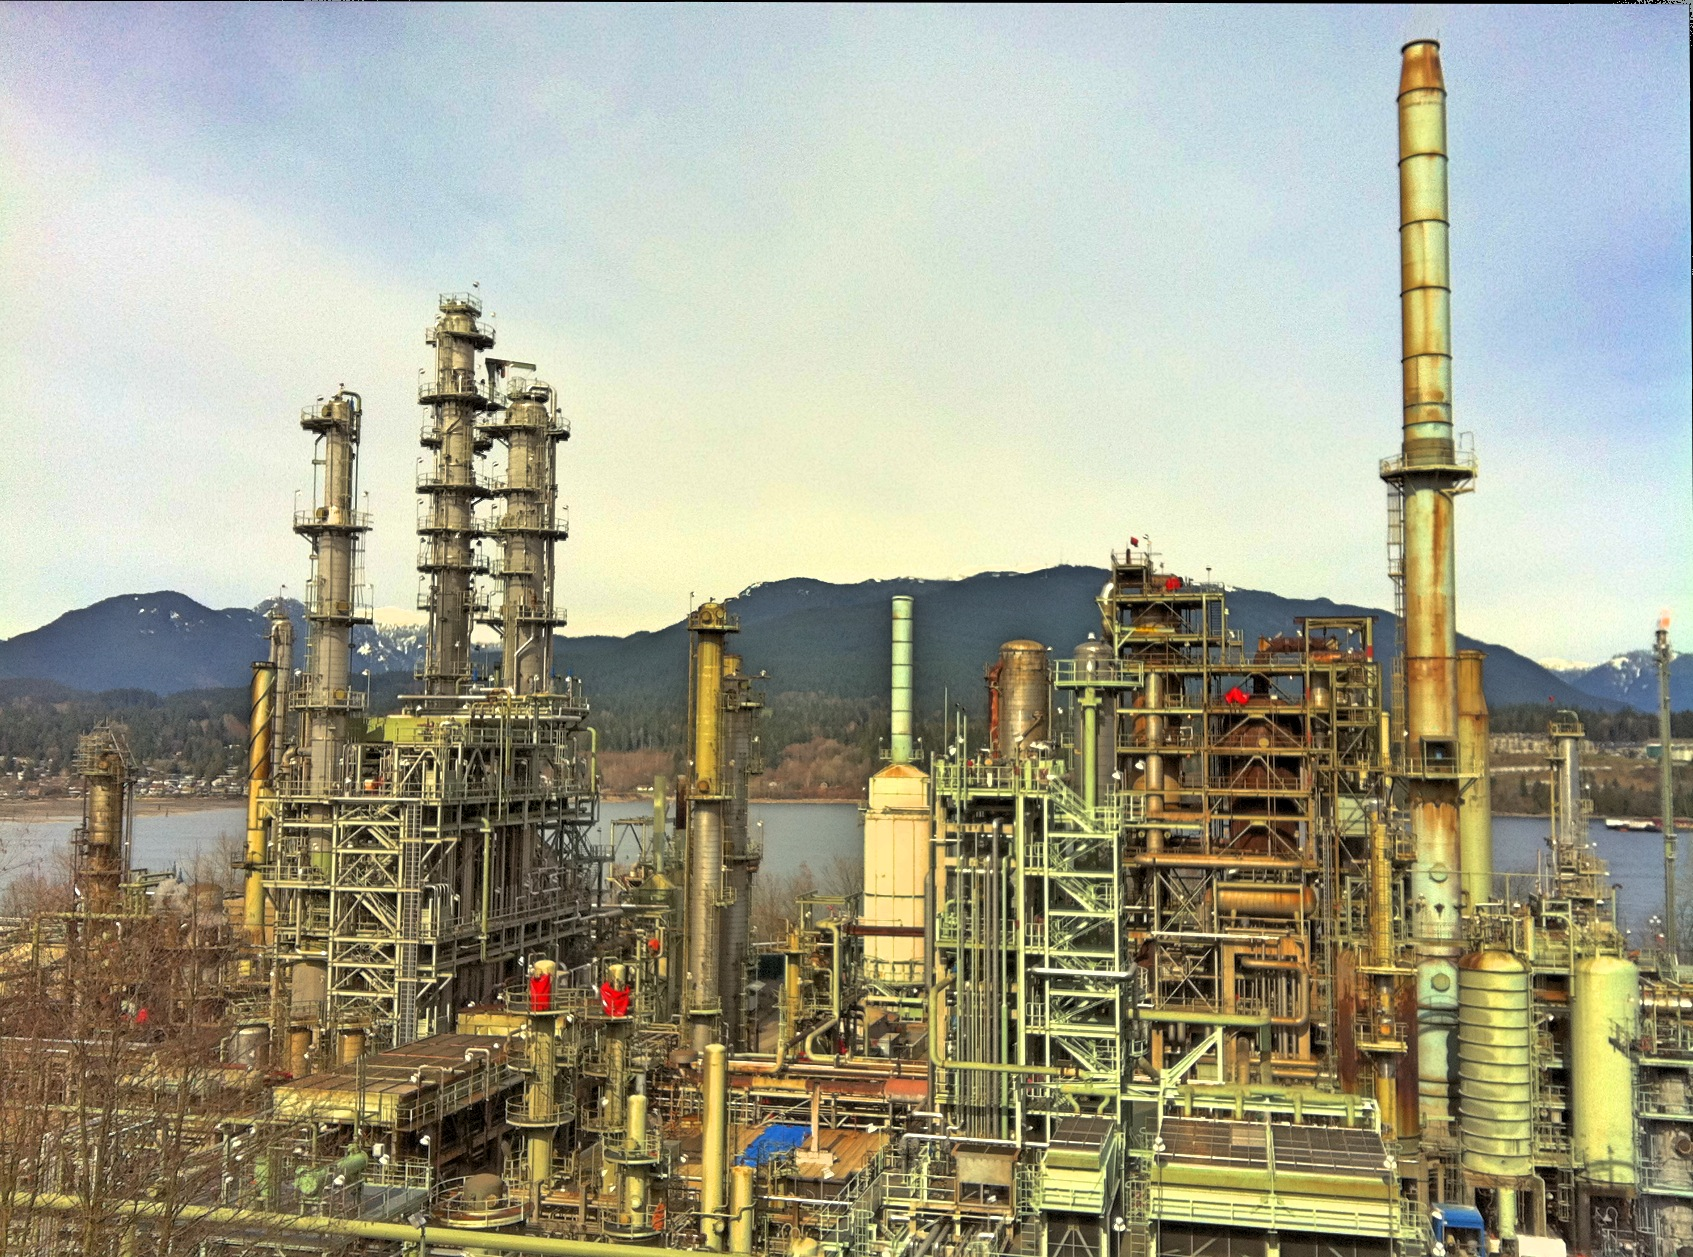 April 2011 in British Columbia, Burnaby, British Columbia, Chevron Corporation, Flickr images reviewed by trusted users, Malayalam loves Wikimedia event - 2011 April, Oil refineries in Canada